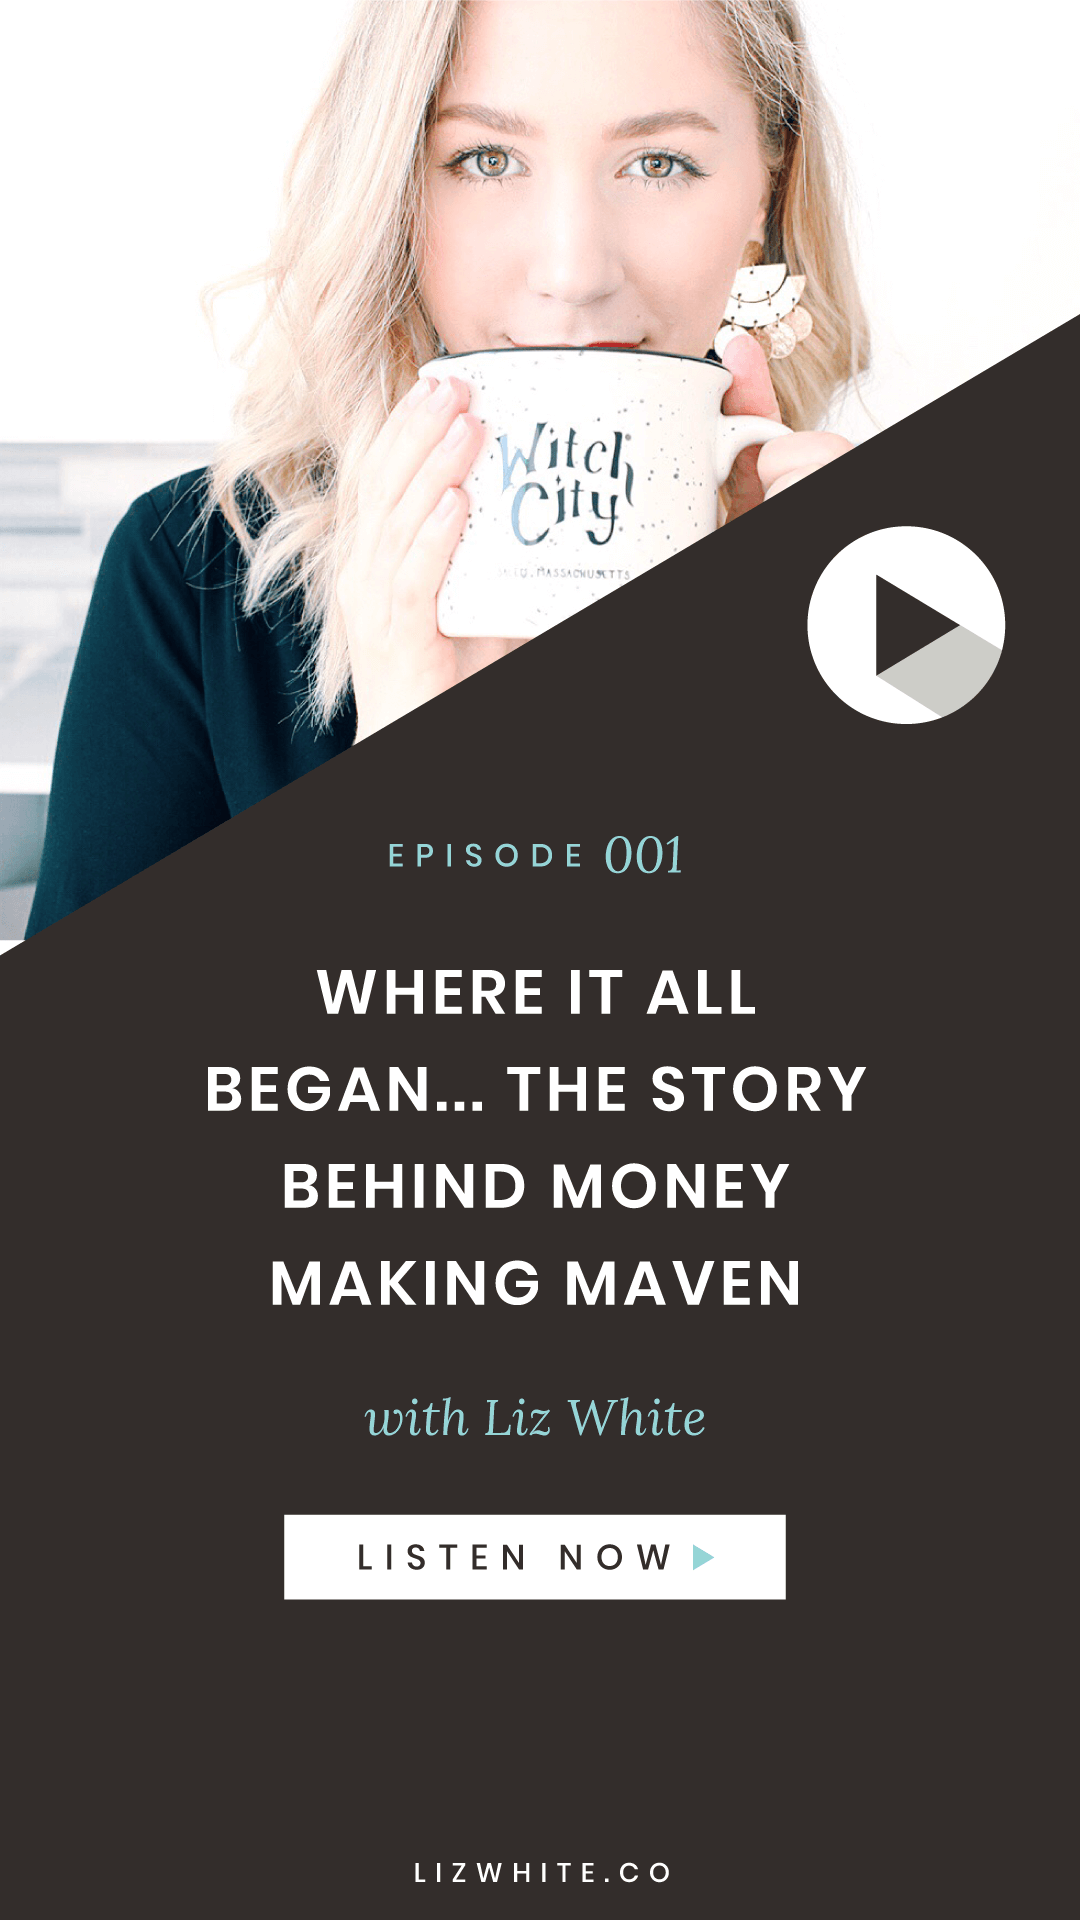 In this weekly podcast, Liz White from lizwhite.co dives in to all things money, mindset, and magic. As a mentor & coach for spiritually minded boss babes, she helps women awaken their inner money making maven, call in the life they truly desire, and run a fully aligned & profitable business. Tune in for tips and stories about business, entrepreneurship as a woman, money mindset, manifestation, law of attraction, and all things woo.